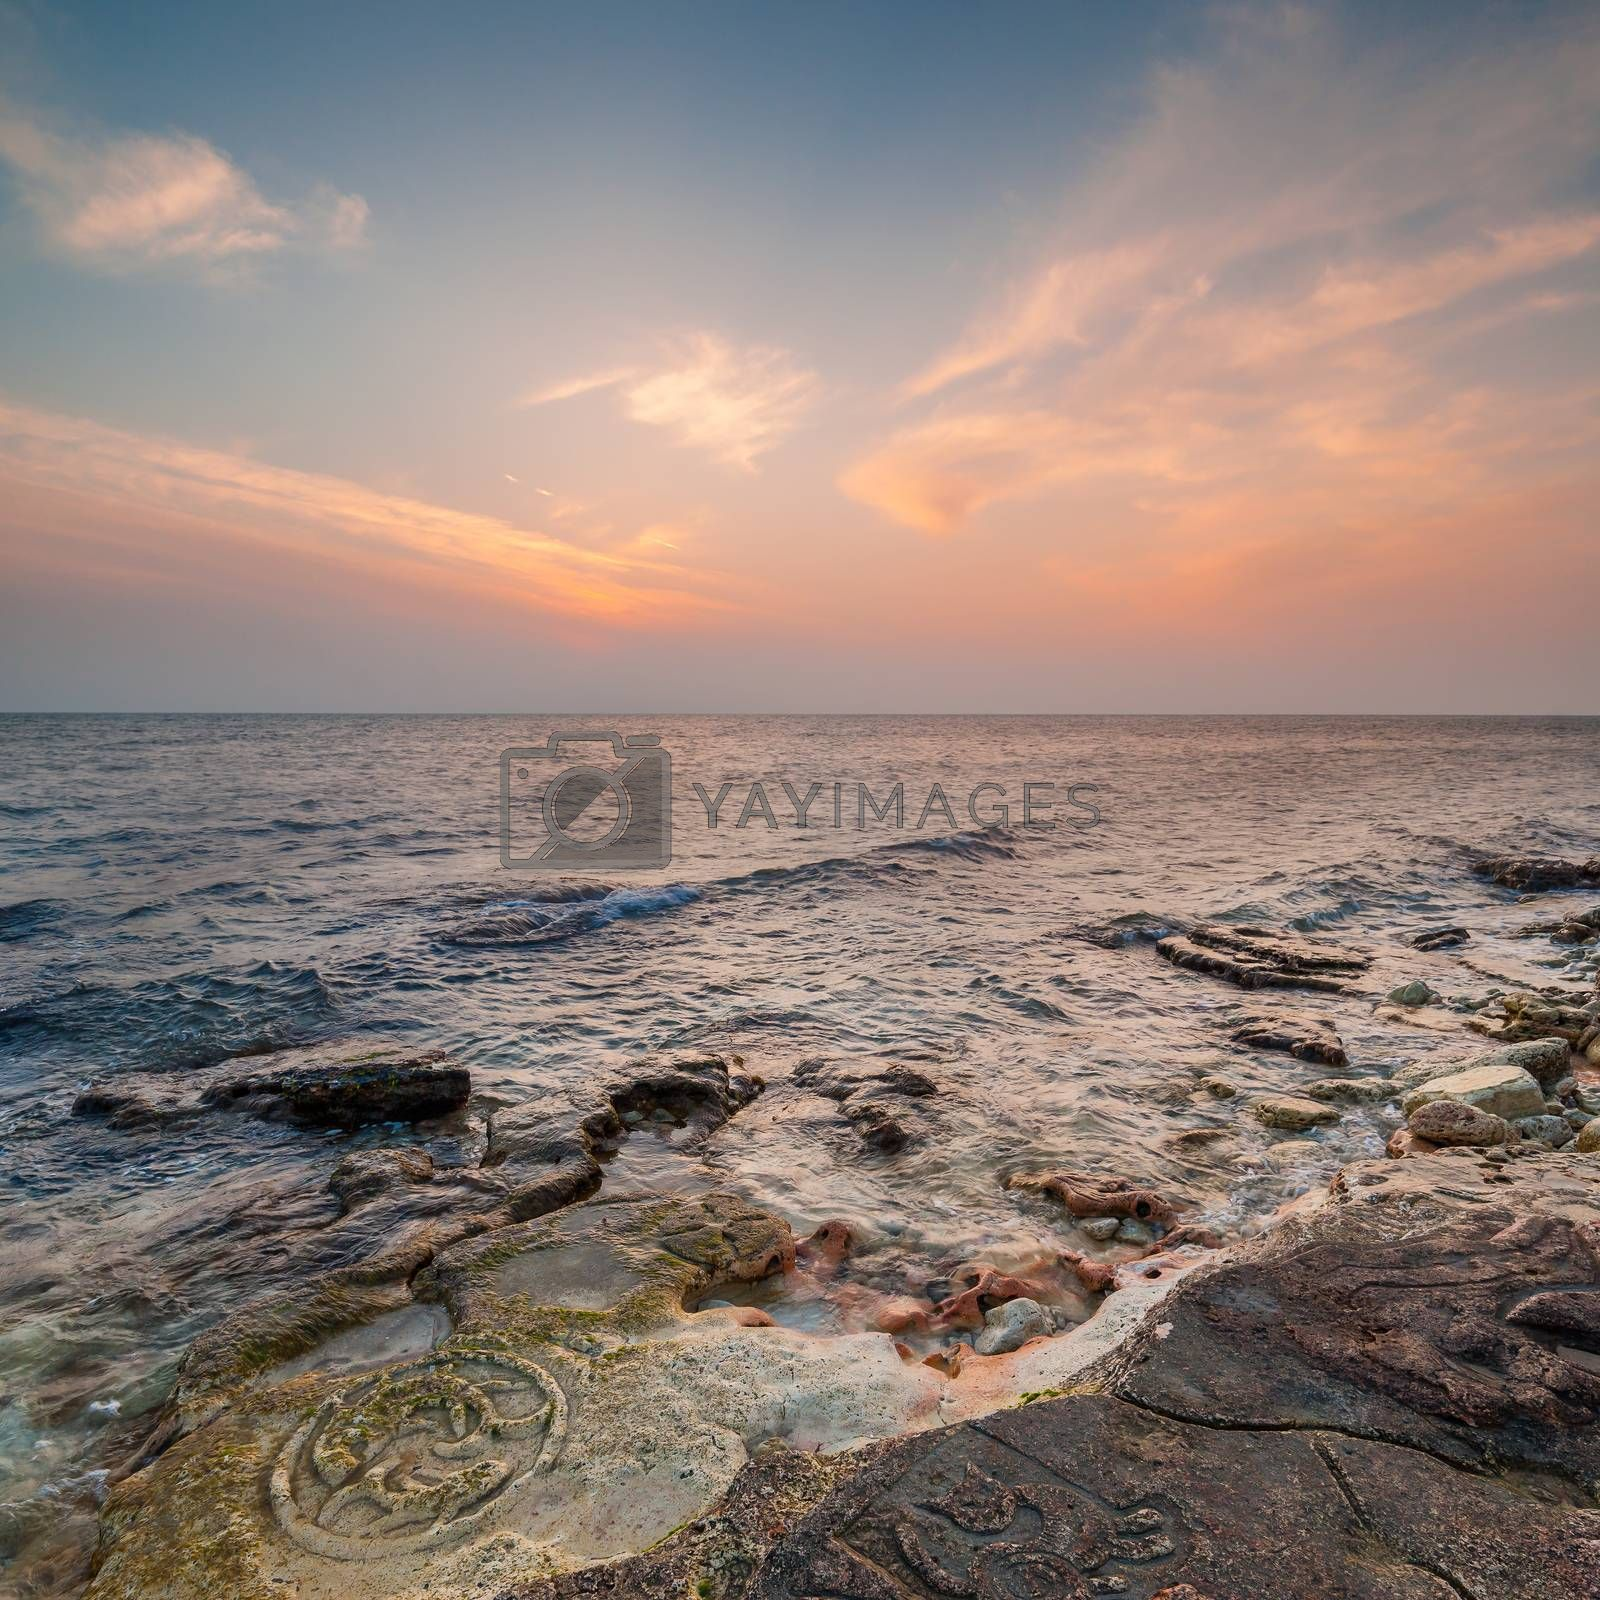 Royalty free image of Seascape by firewings